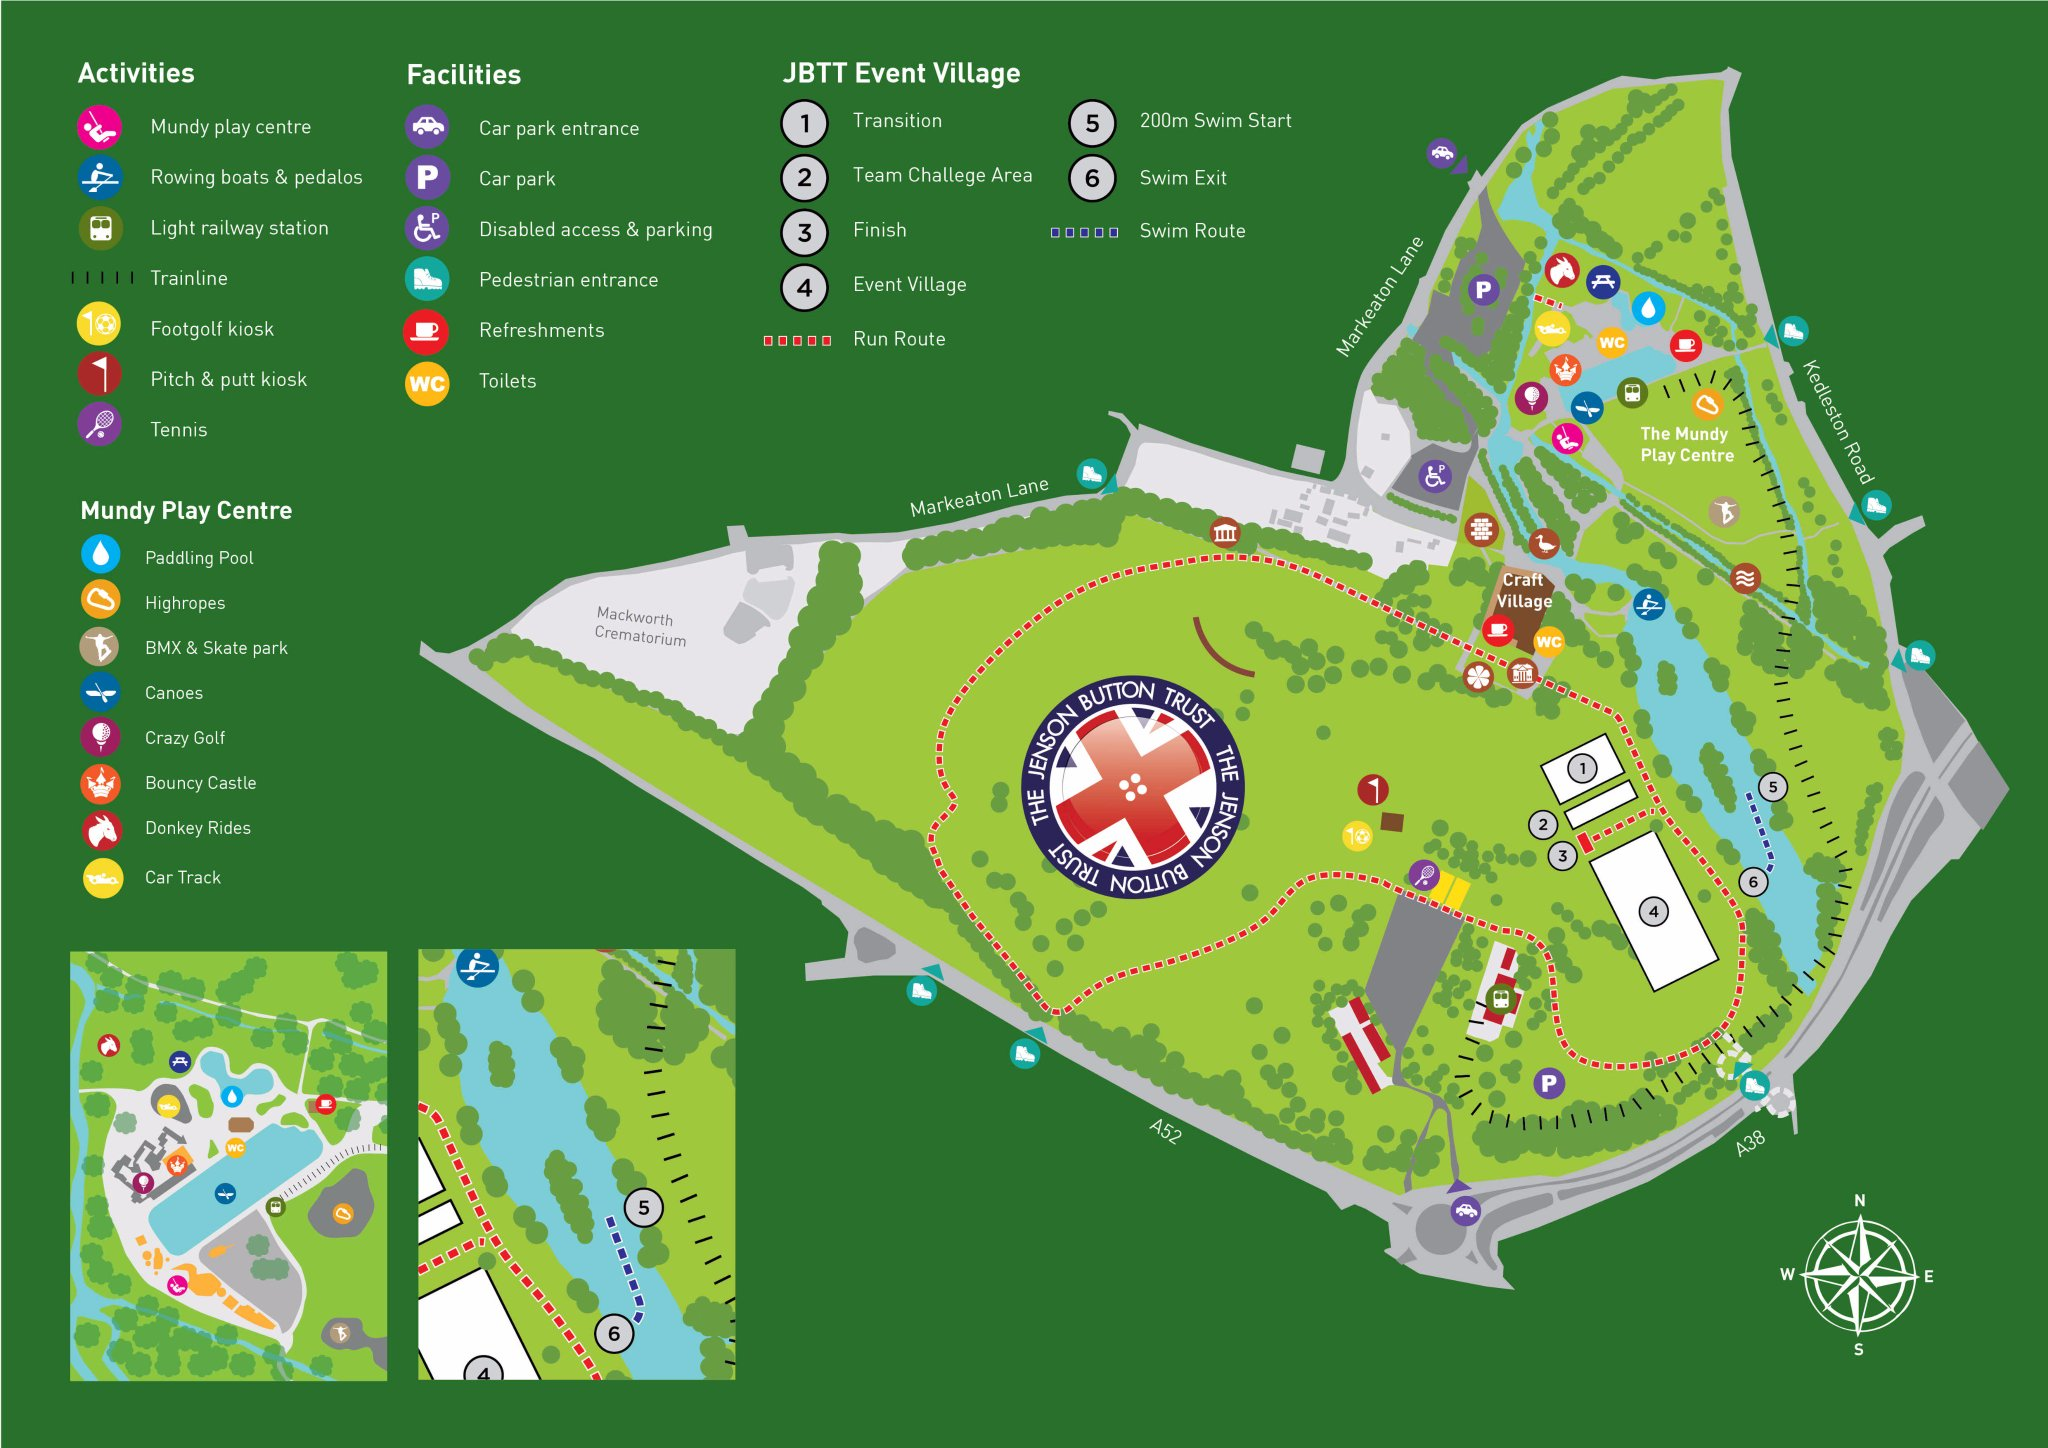 RT @JBTrustTri: We have plenty going on in the event village - here's a look at the map: https://t.co/XphlJD5BFD https://t.co/HcnHecII25